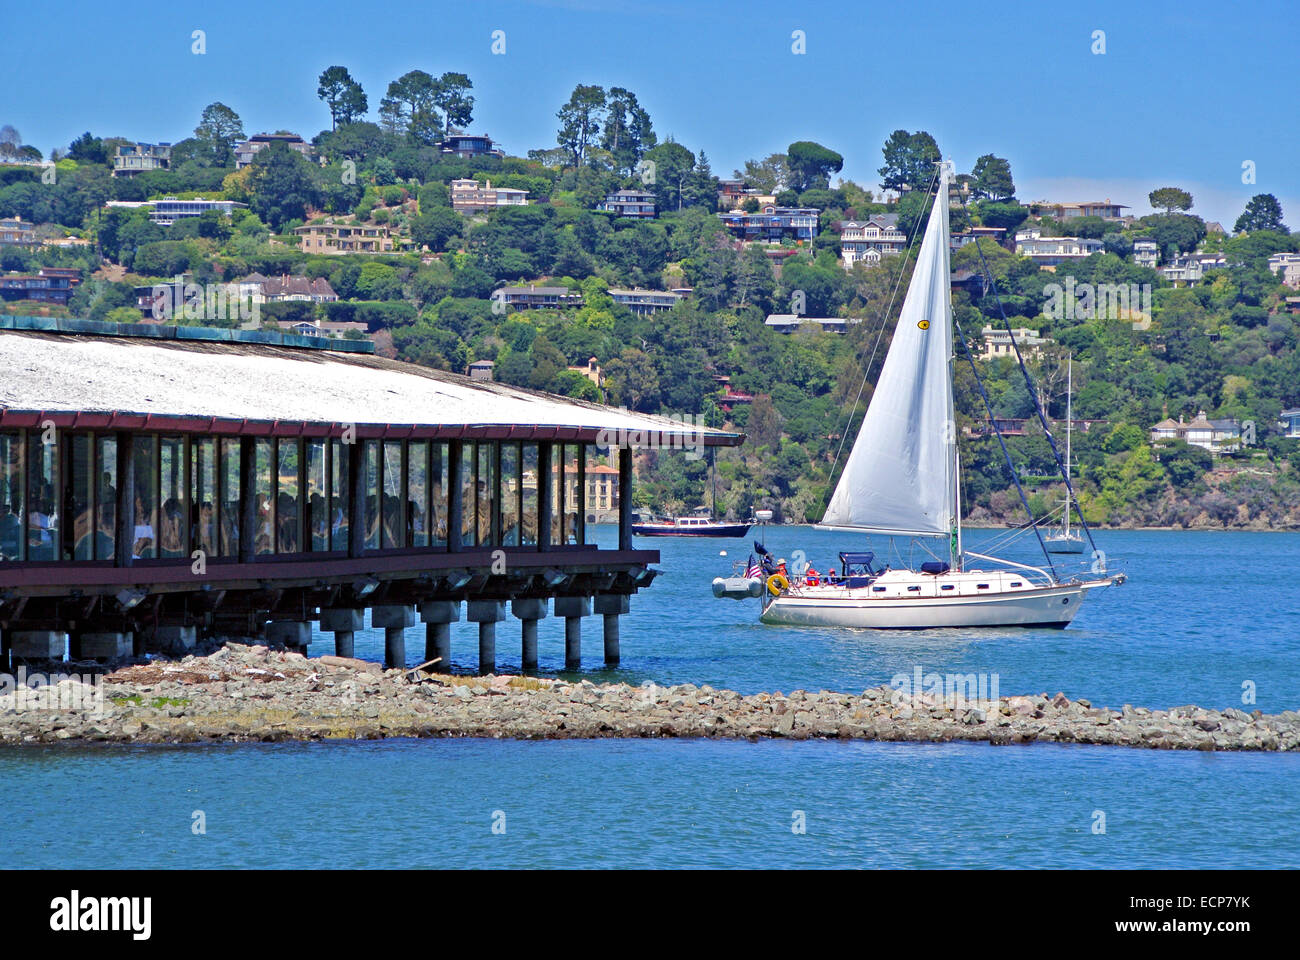 View Of A Waterfront Restaurant On San Francisco Bay In